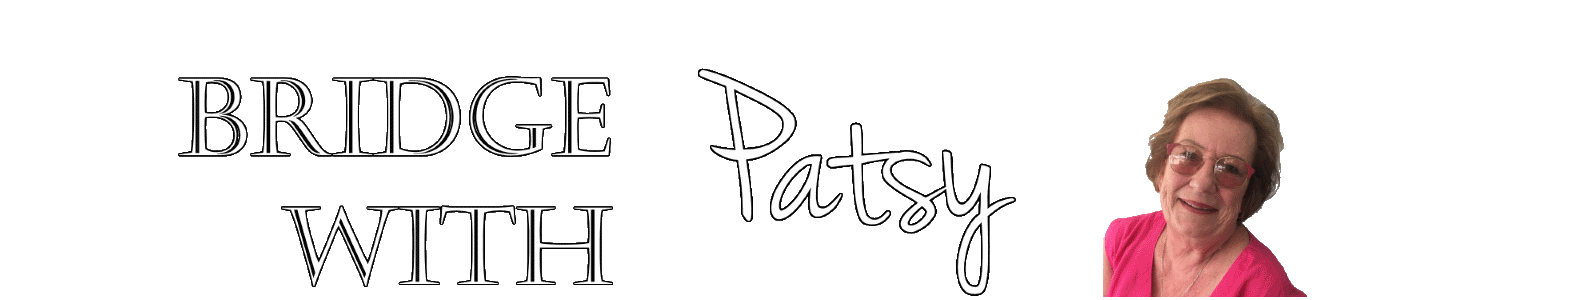 Results from Patsy's games